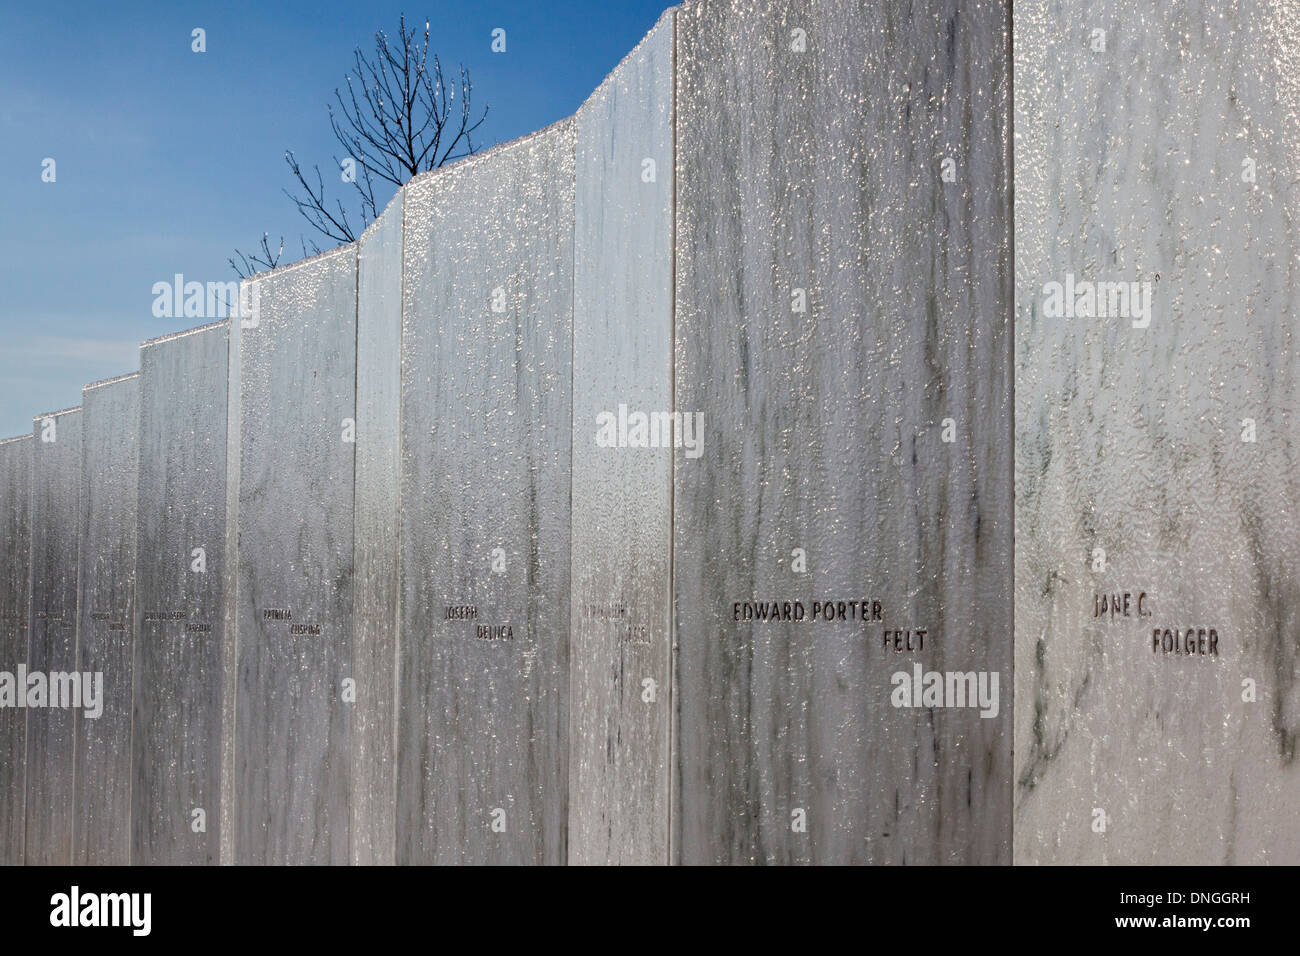 The Flight 93 National Memorial remembers those killed on United Airlines Flight 93 on September 11, 2001. Stock Photo